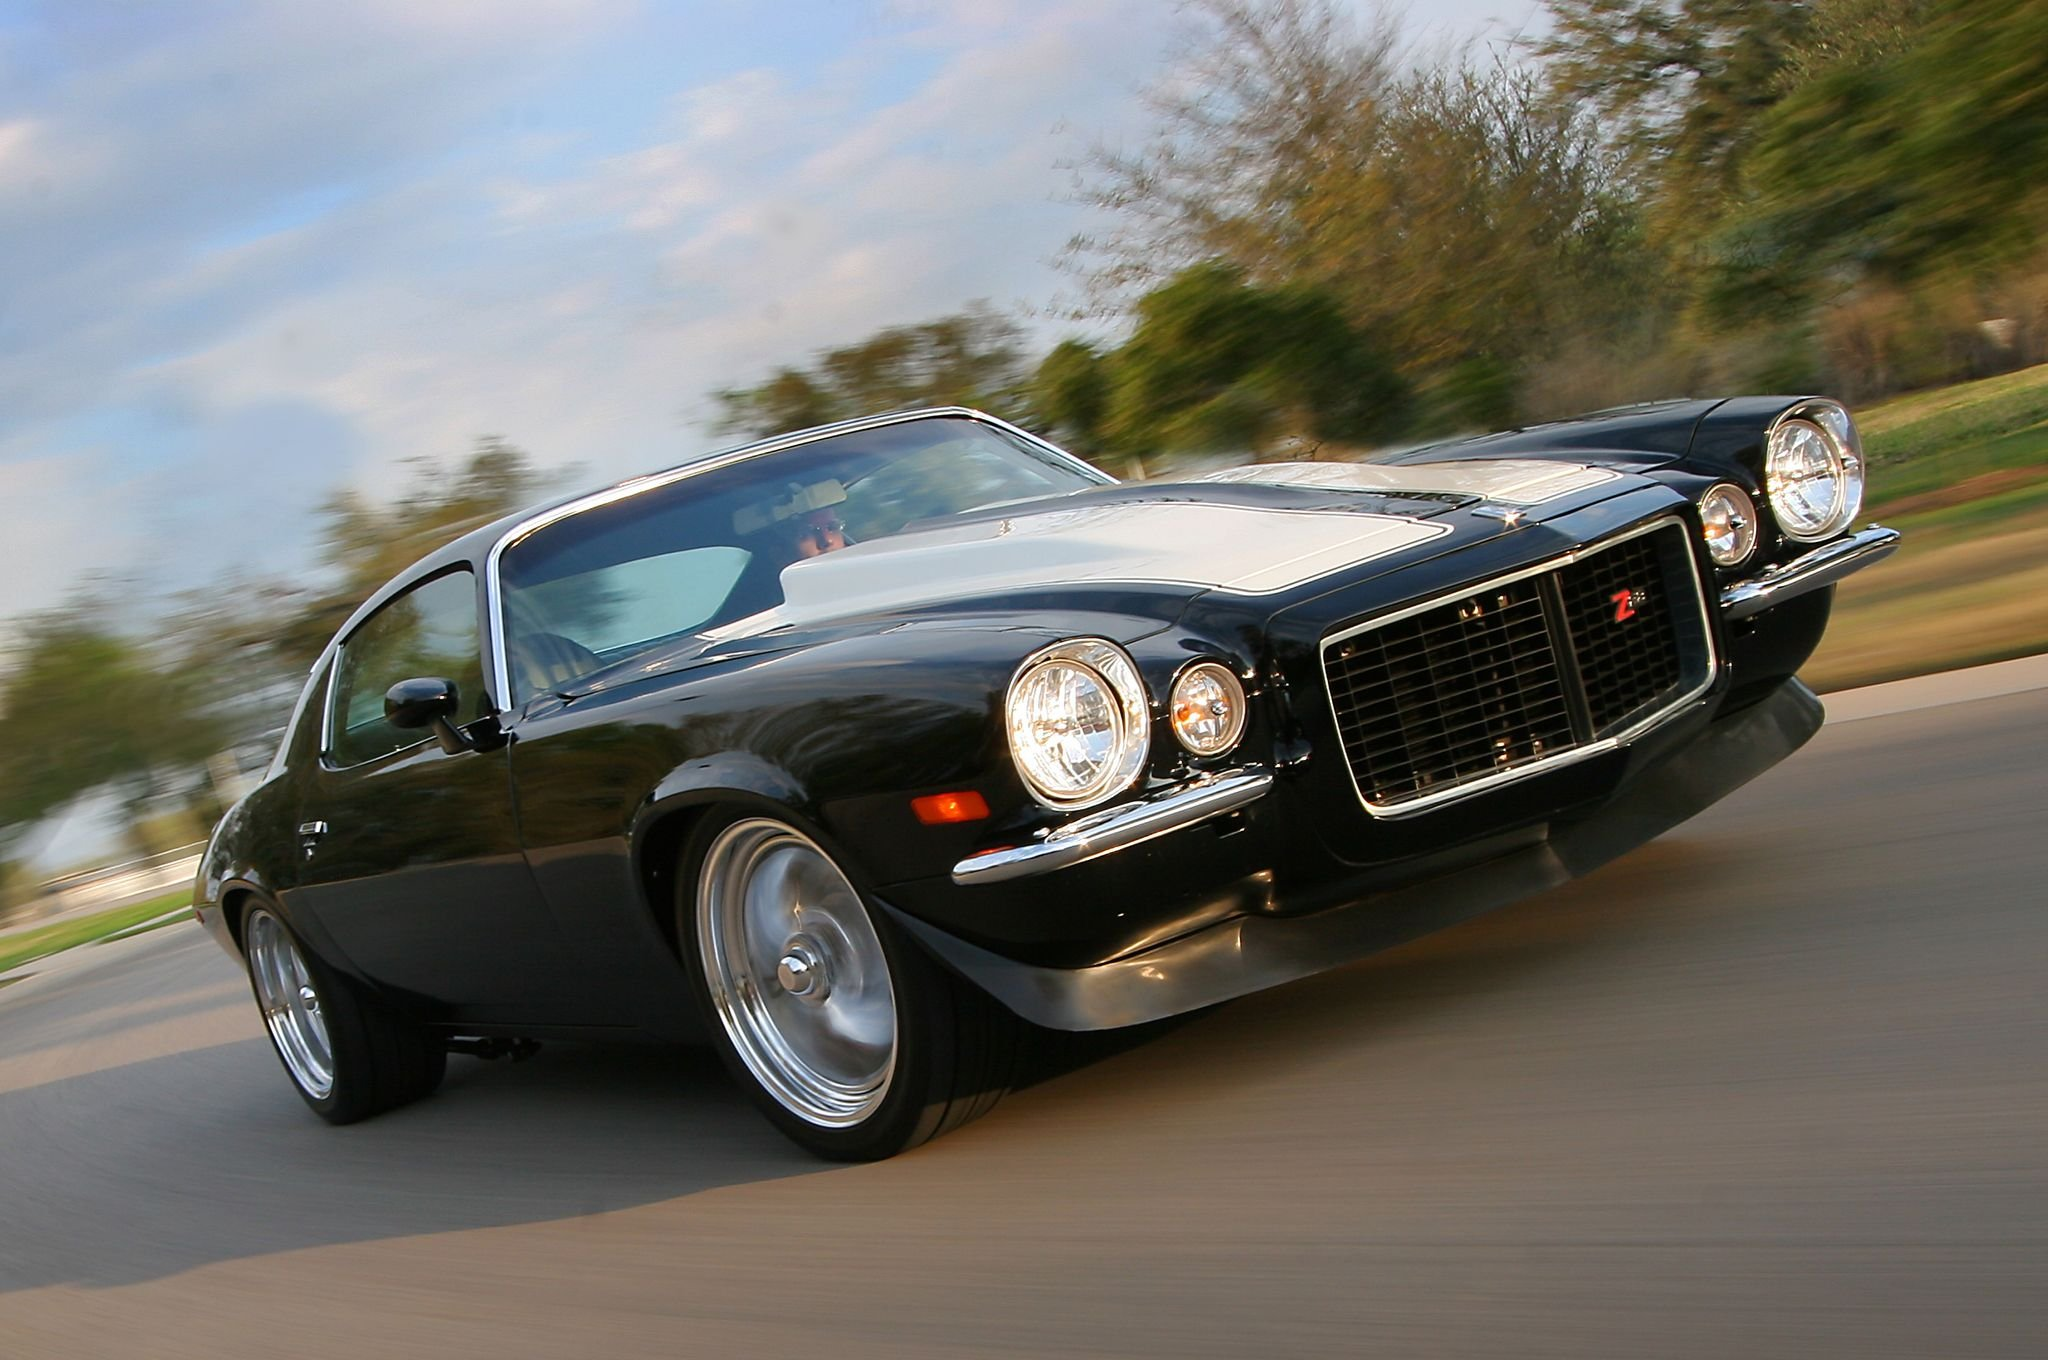 Used 1971 Chevrolet Chevelle For Sale  CarGurus